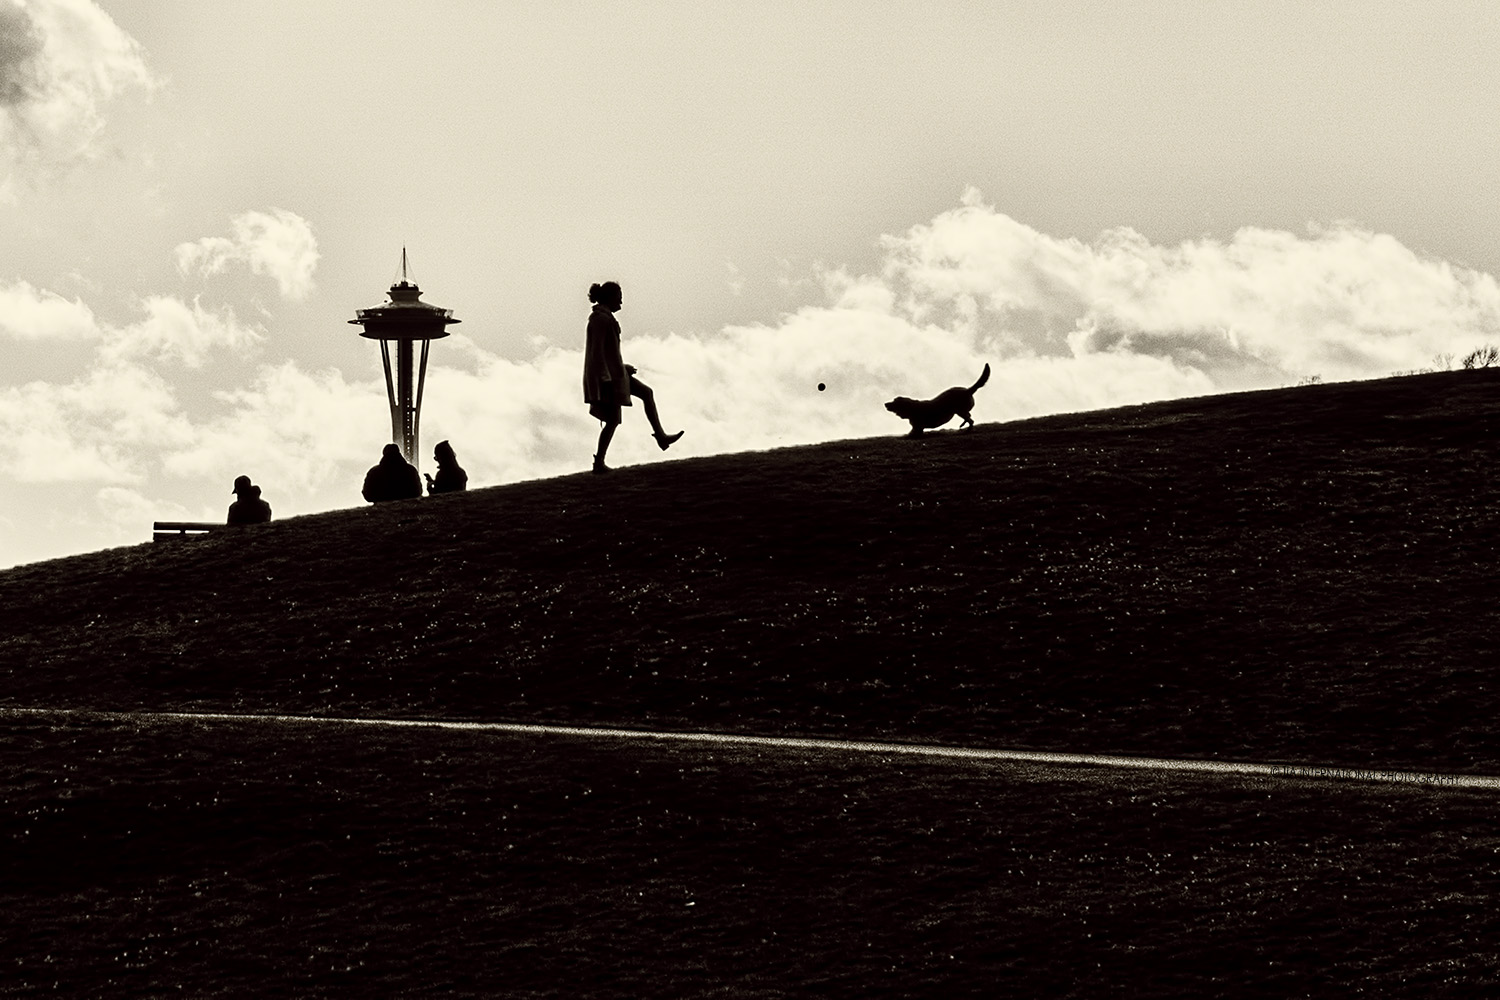 Silhouettes of people, a dog, and the Space Needle at Gas Works Park in Seattle. (December 22, 2020).